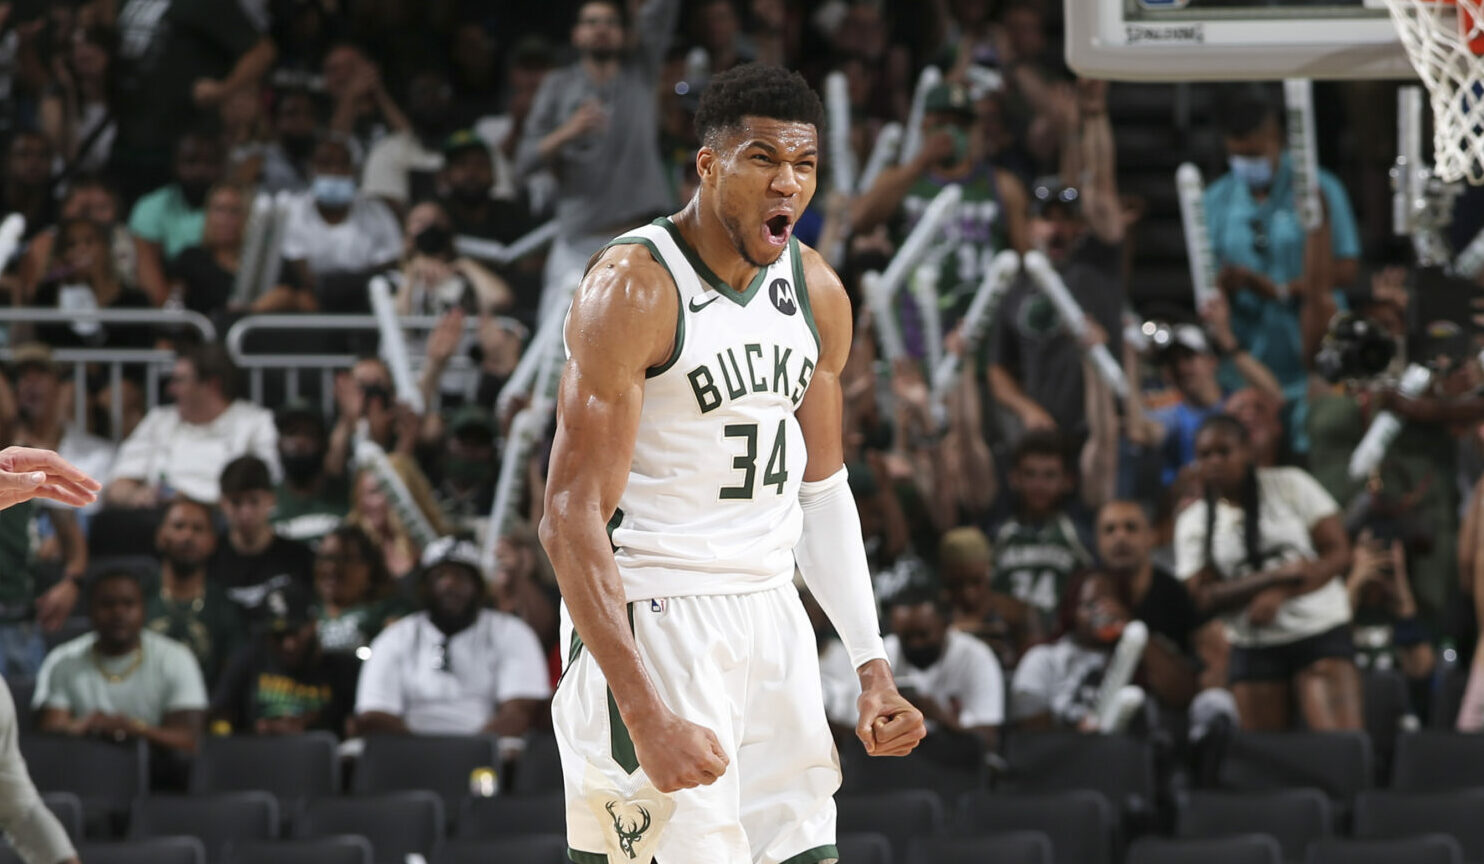 Bucks win Game 4 to even series at 2-2